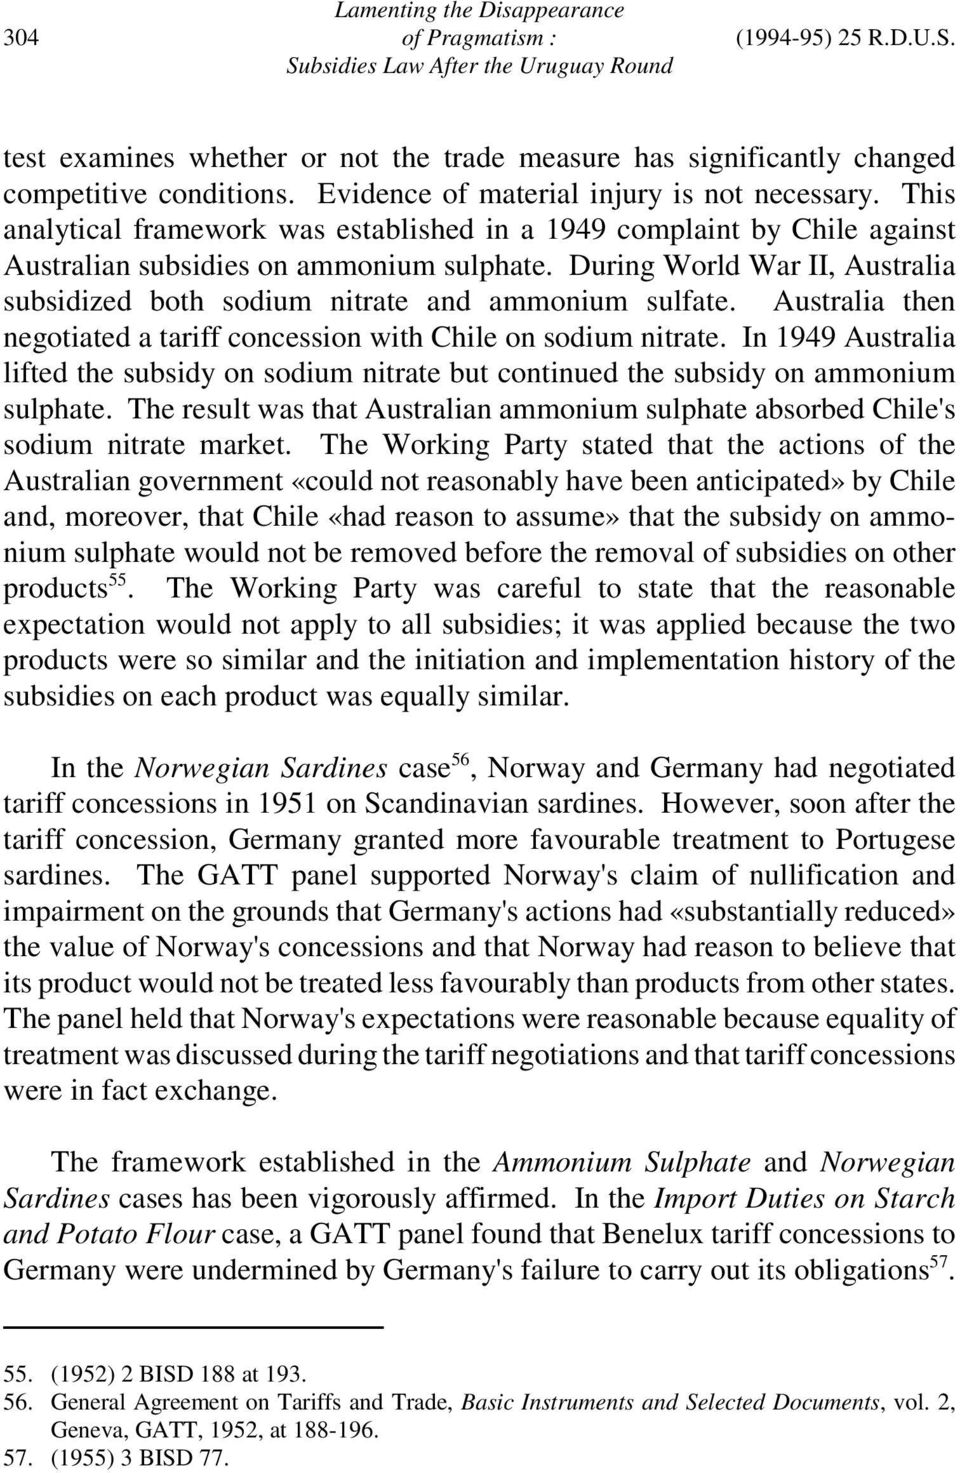 During World War II, Australia subsidized both sodium nitrate and ammonium sulfate. Australia then negotiated a tariff concession with Chile on sodium nitrate.